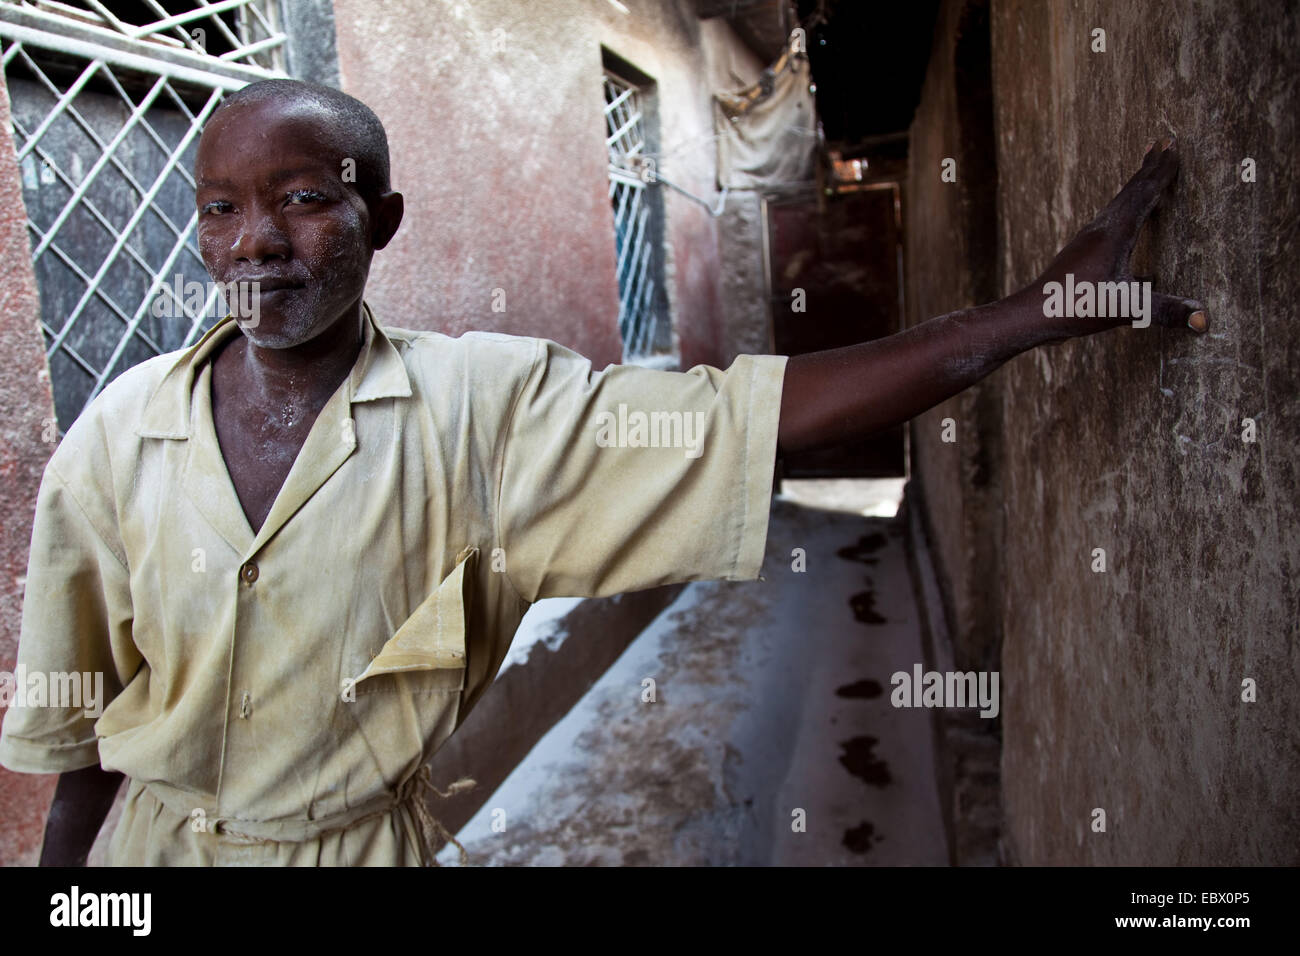 worker in a small local flour factory that produces flour from the cassava plant, Rwanda, Nyamirambo, Kigali - Stock Image